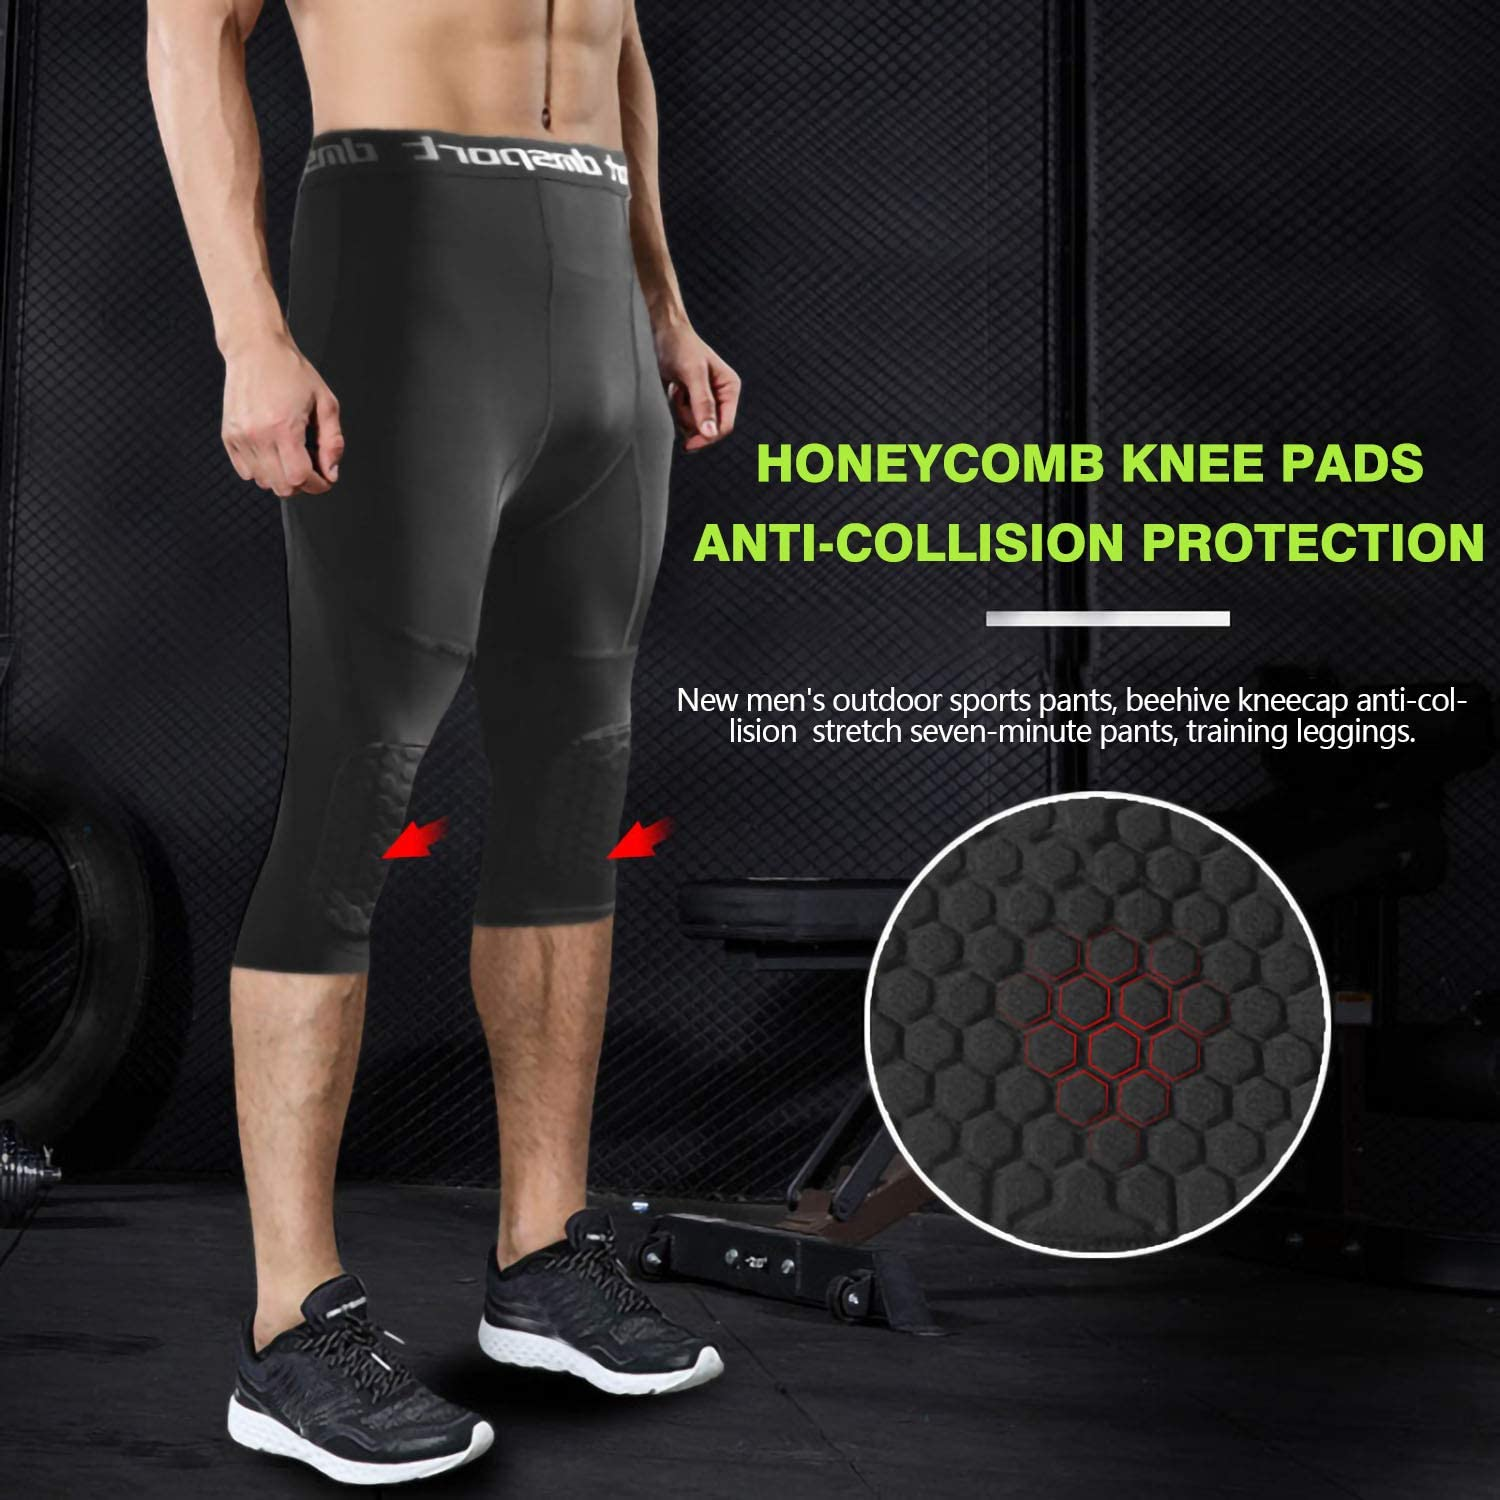 Legendfit Basketball Pants with Knee Pads 3//4 Capri Padded Compression Tights Baselayers Sports Protector Gear for Men Youth Kids Boys